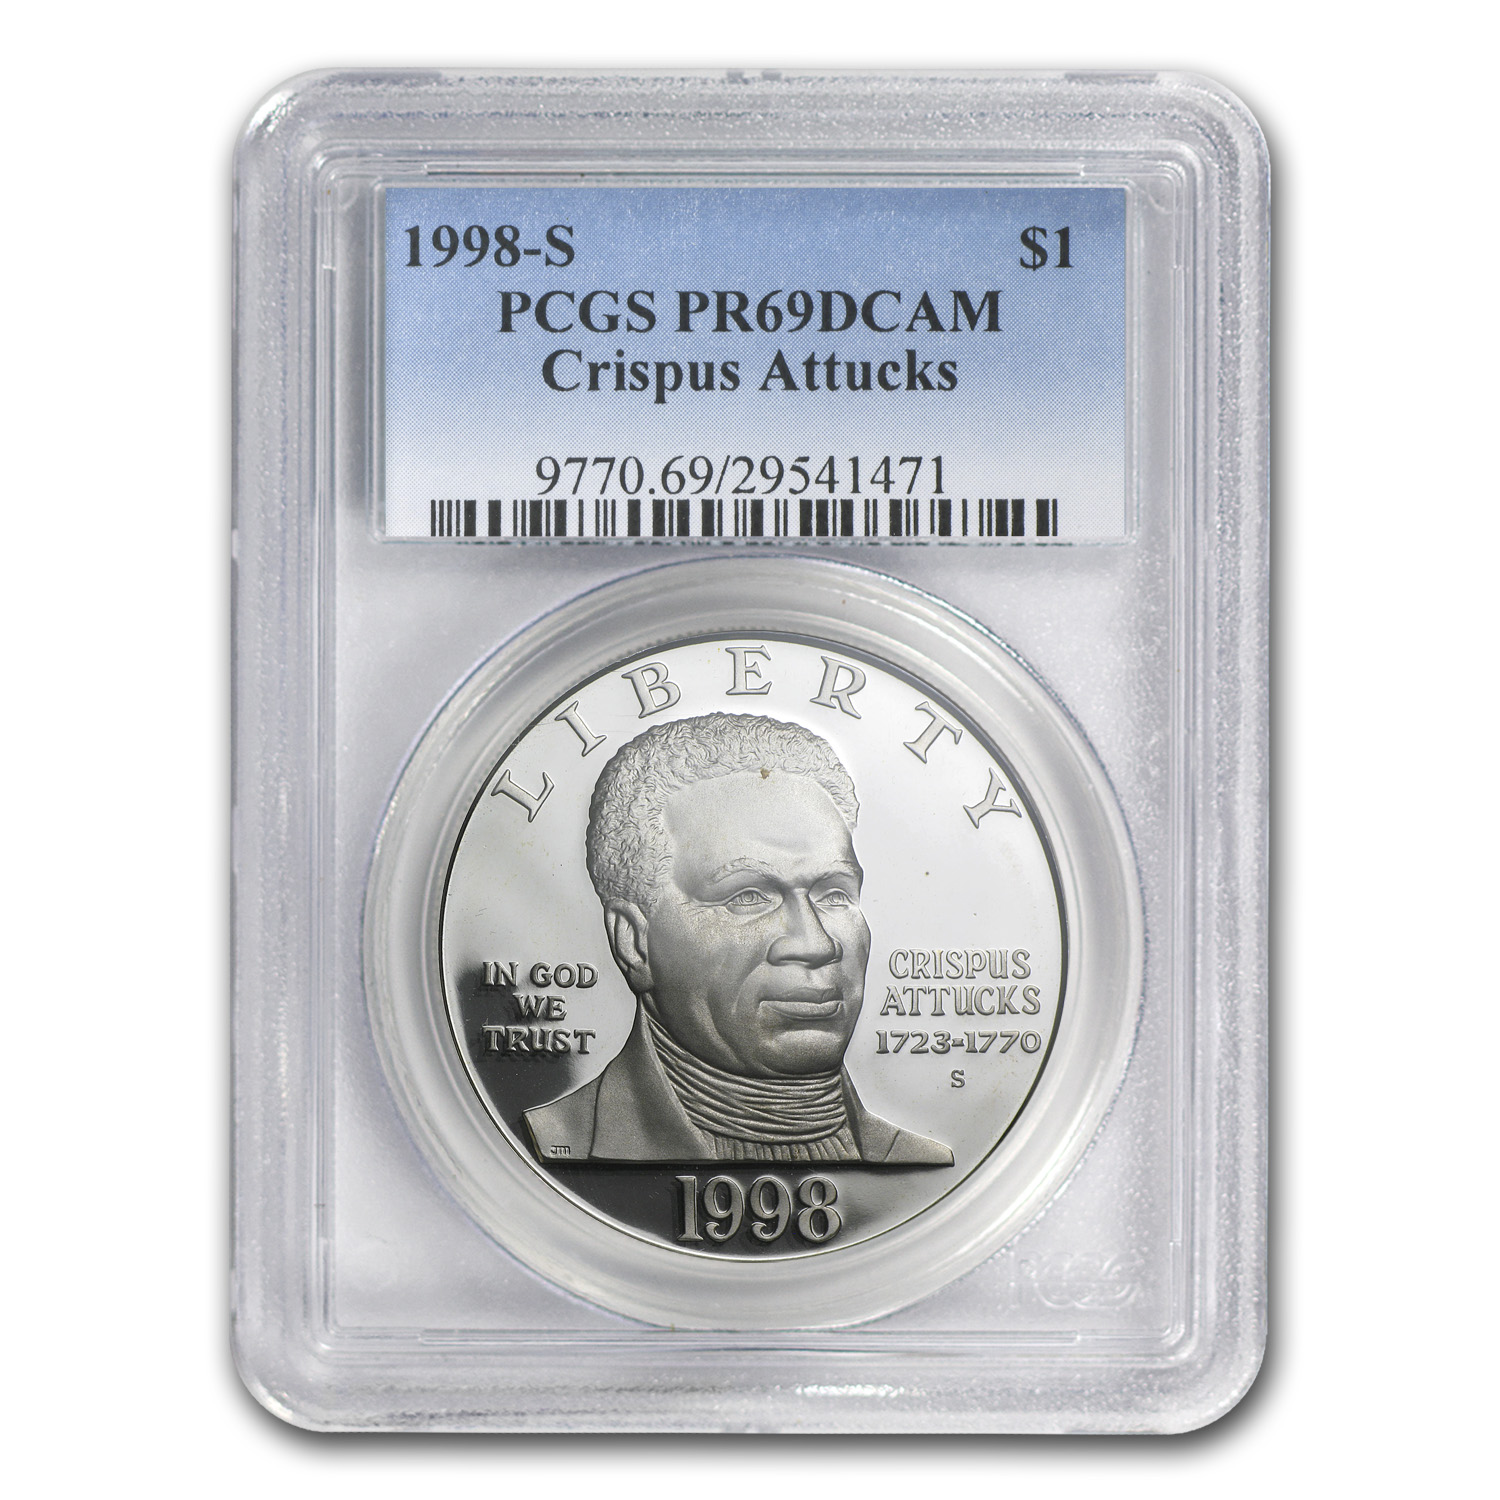 1998-S Black Patriots $1 Silver Commemorative PR-69 PCGS